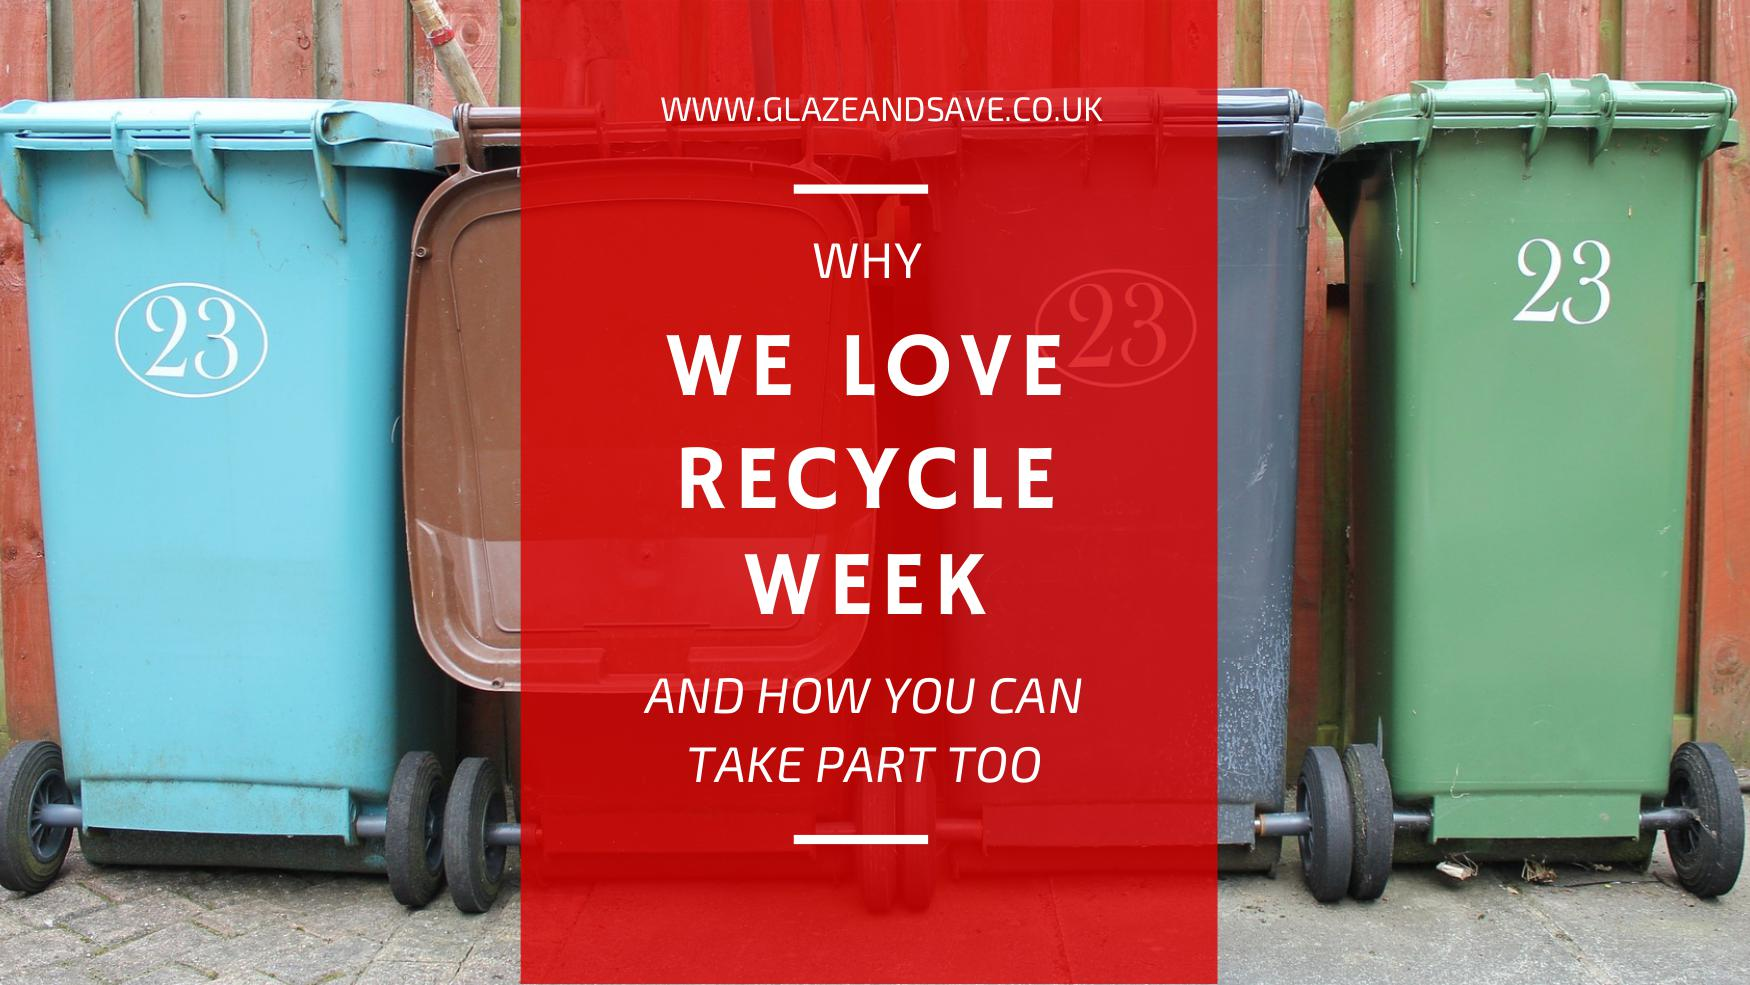 Why we love recycle week and how you can take part too by Glaze & Save, bespoke magnetic secondary glazing and draught proofing based in Perth, Scotland.